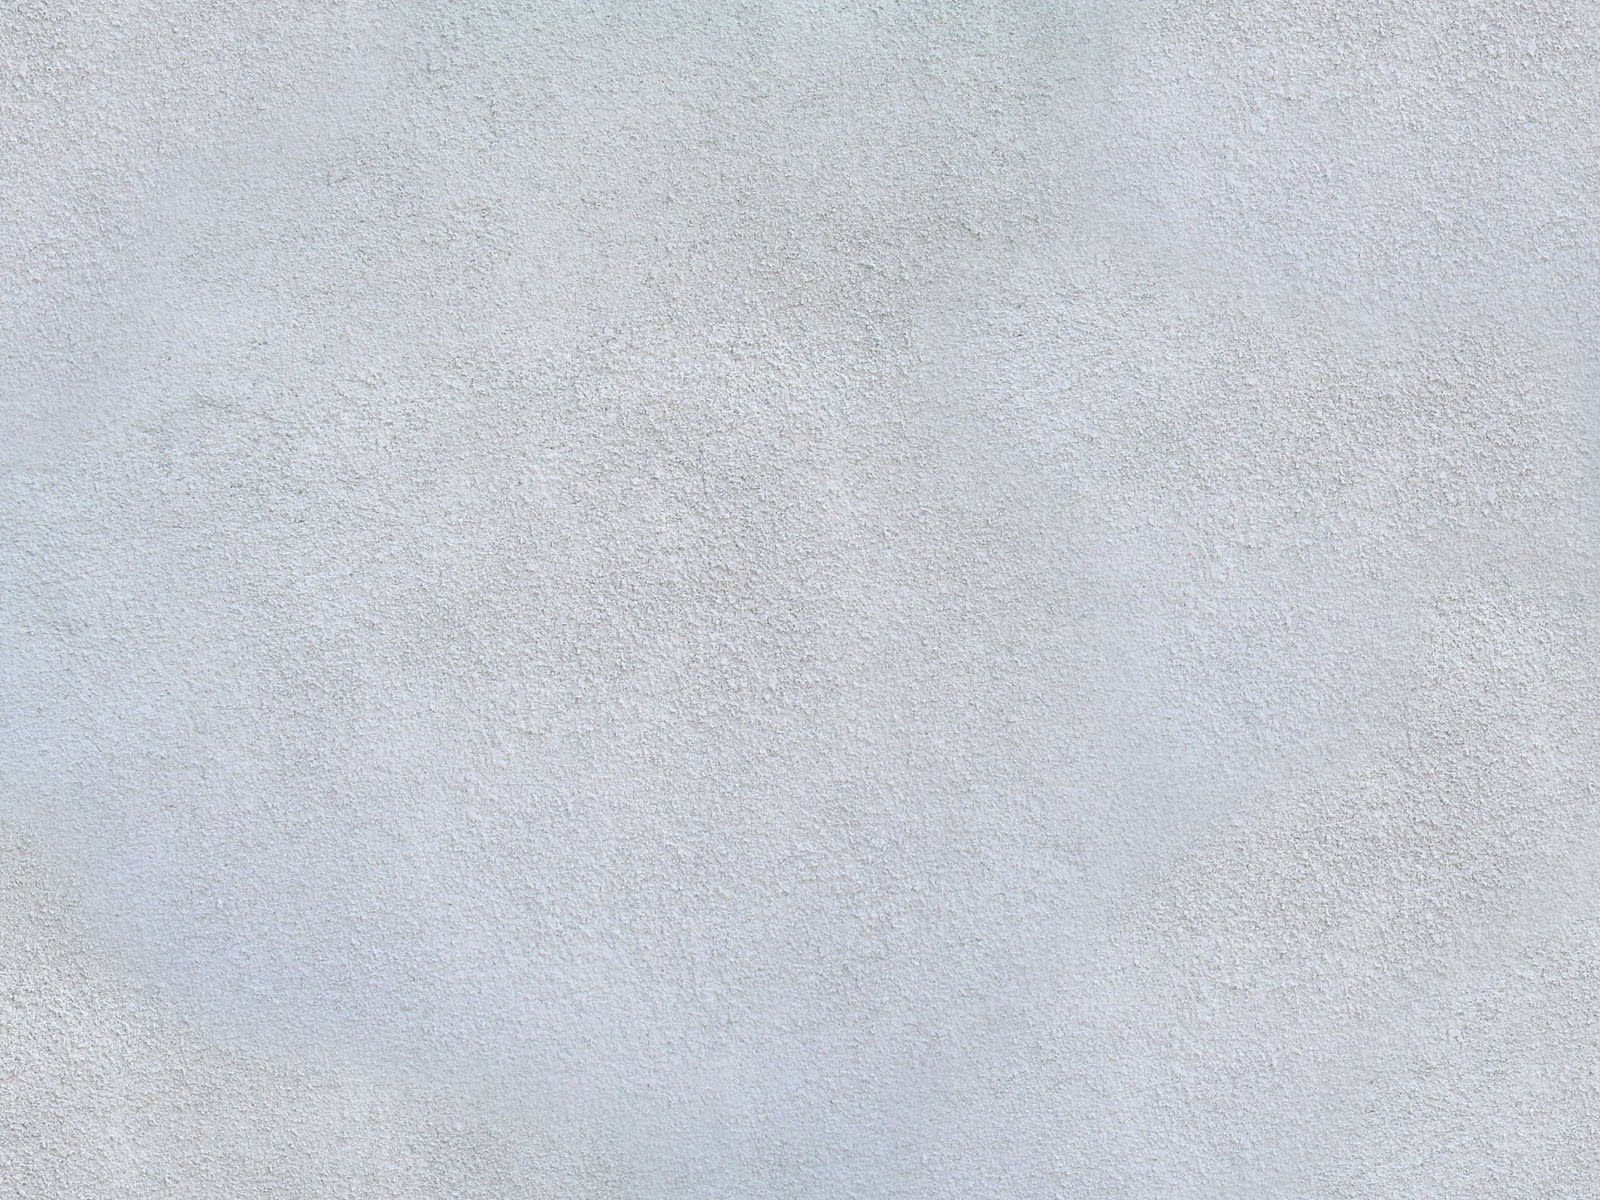 white concrete texture google search concrete floor textureconcrete floorsseamless texturespolished concrete